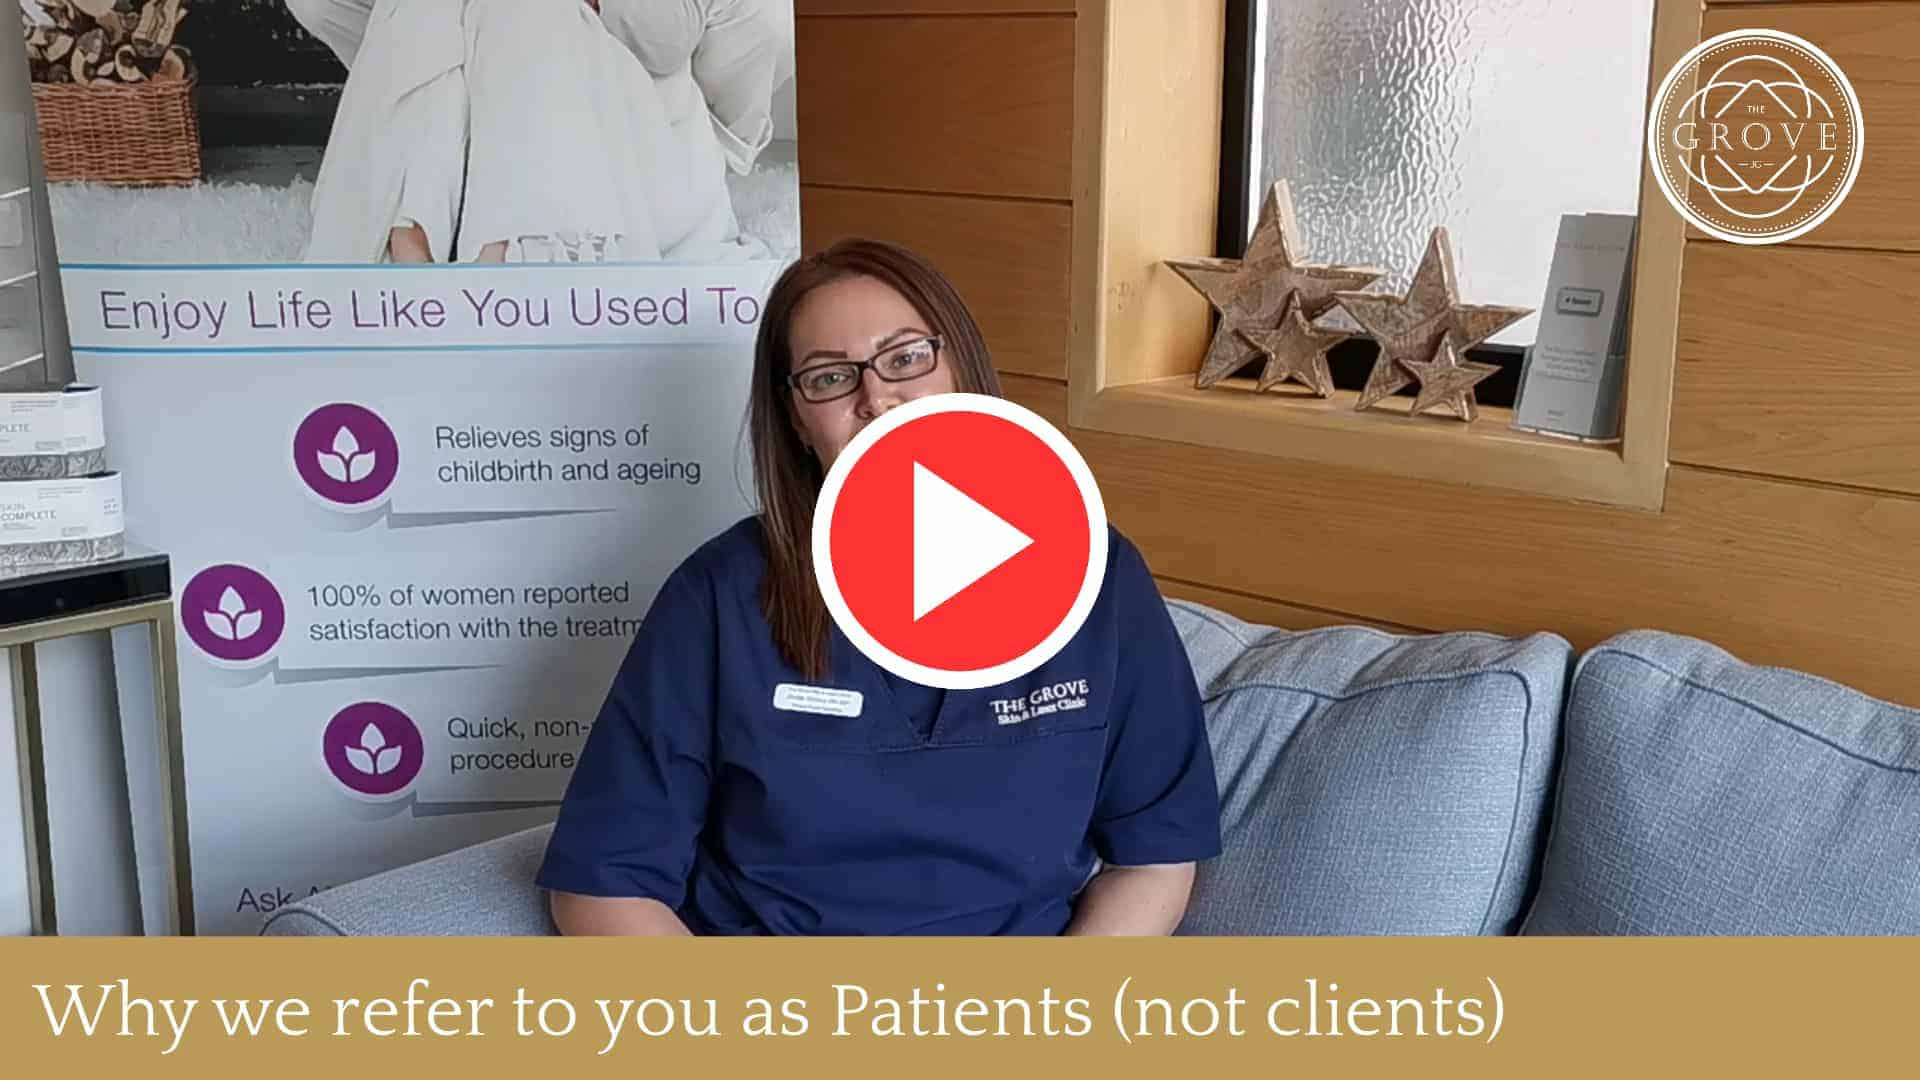 Why we call you Patients and not Clients